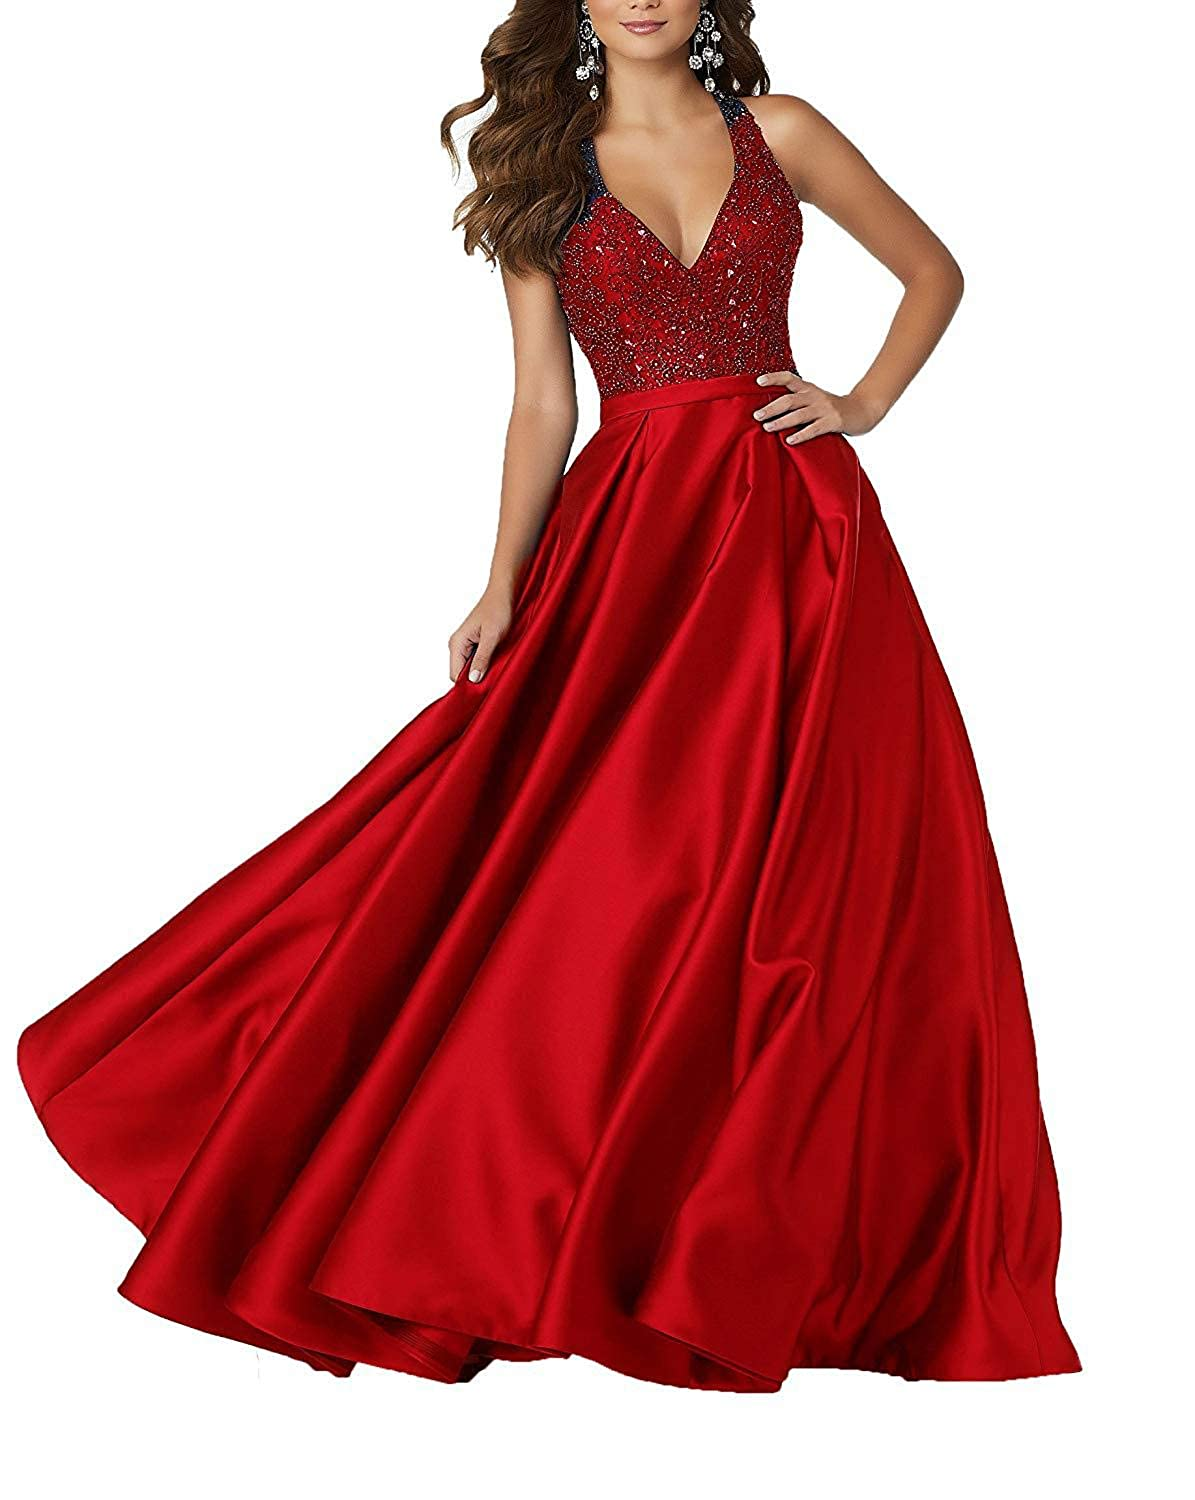 Red Staypretty Long Prom Gowns for Women Beaded V Neck Evening Dress Satin Aline Backless Formal Gown